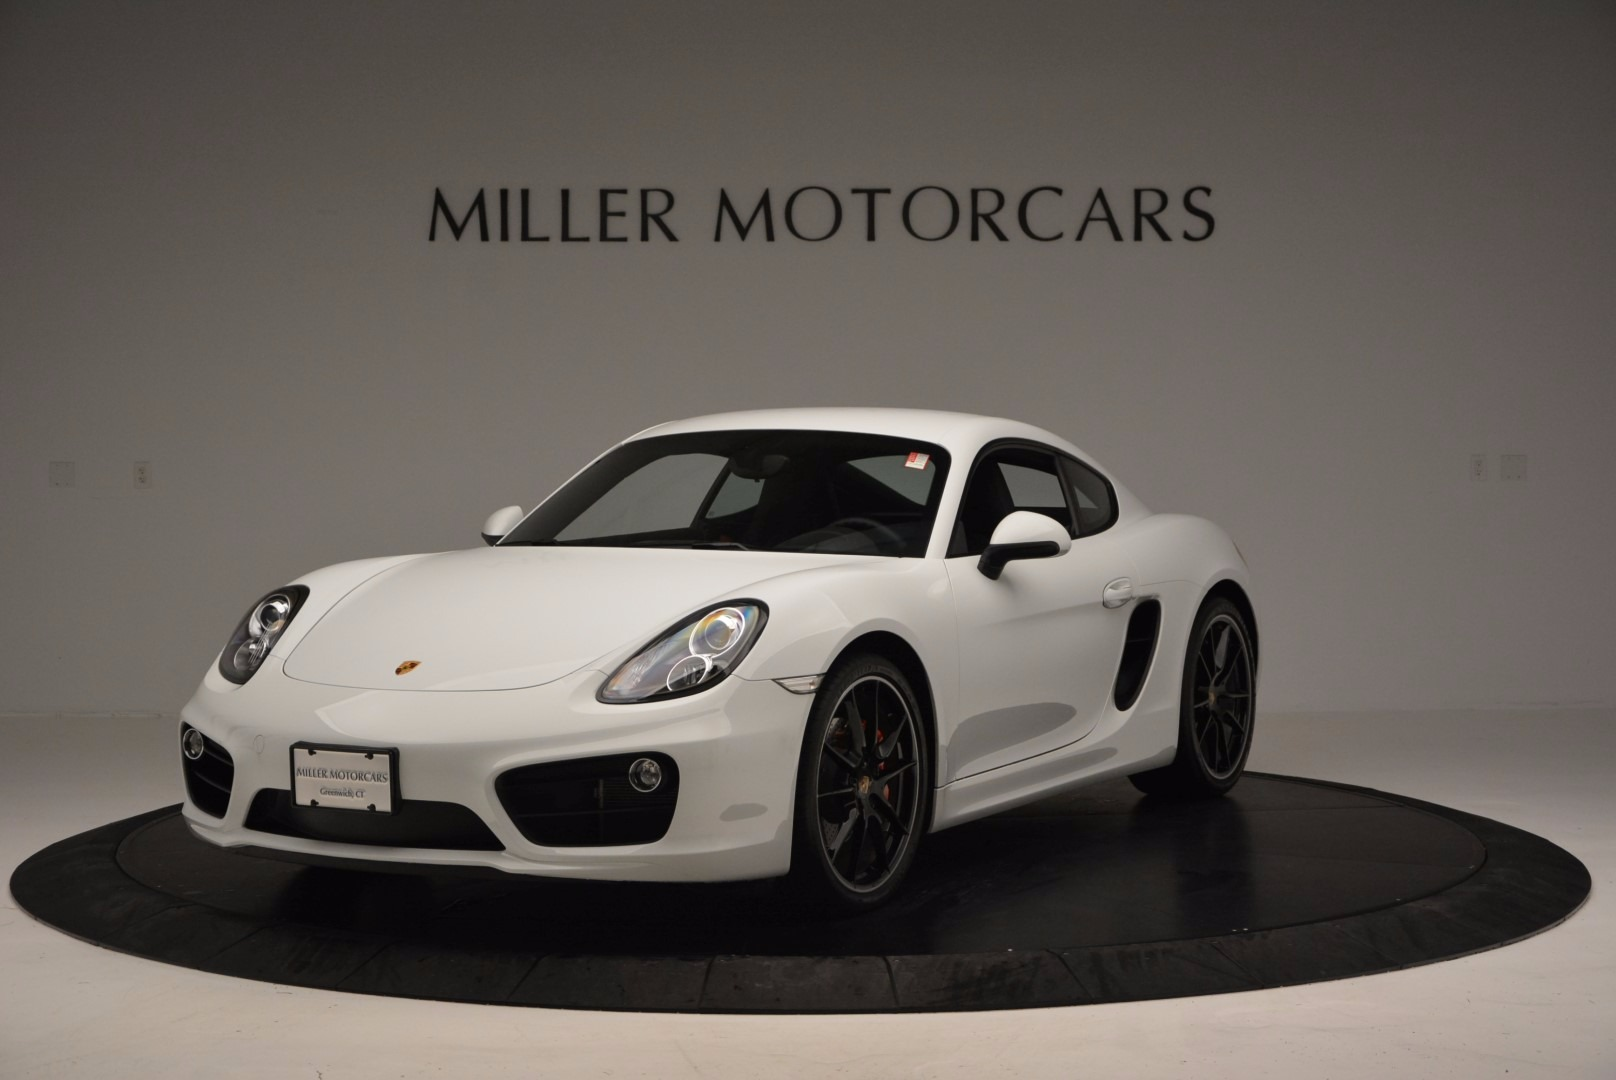 Used 2014 Porsche Cayman S for sale Sold at Maserati of Westport in Westport CT 06880 1